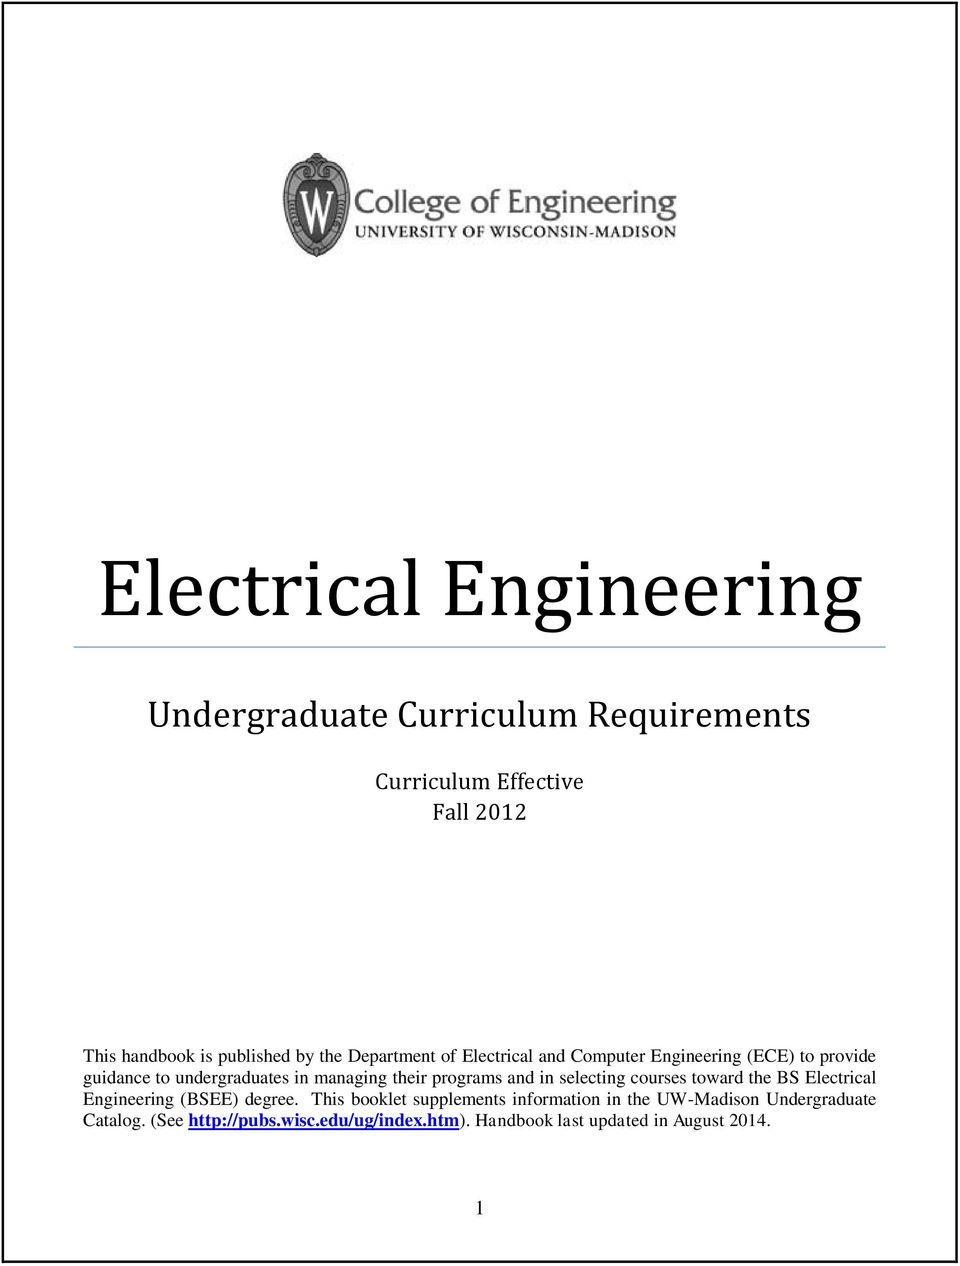 programs and in selecting courses toward the BS Electrical Engineering (BSEE) degree.